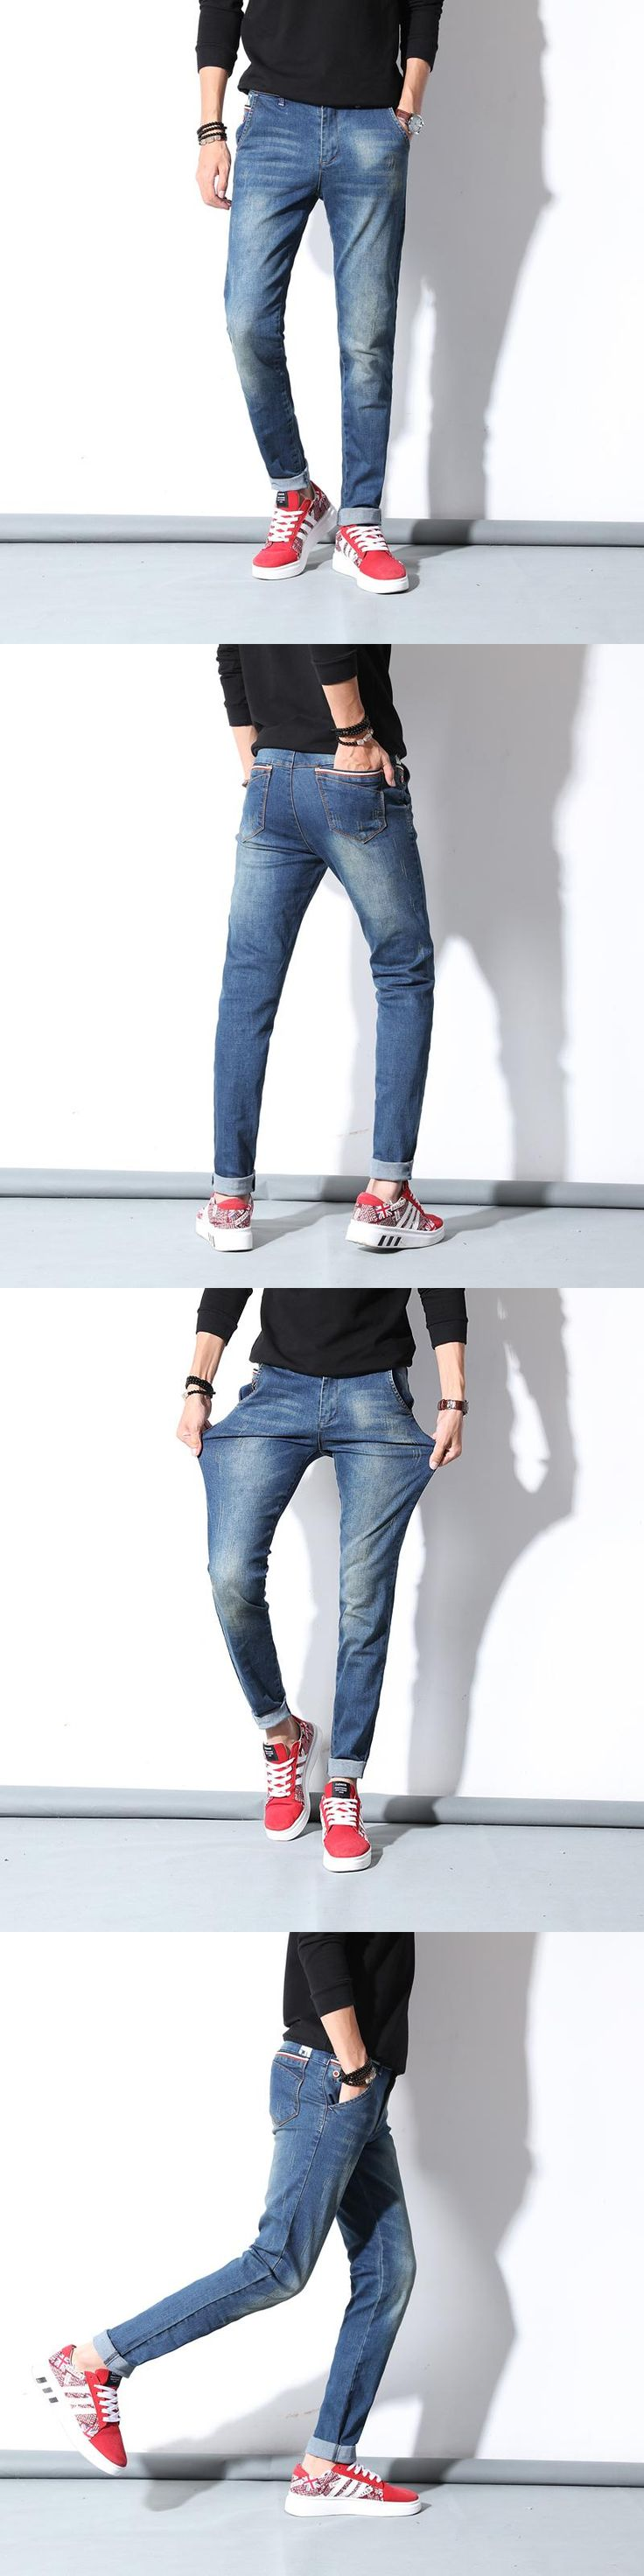 Men's Jeans Blue High Stretch Denim Brand Men Jeans  Casual Straight Denim Jeans Pants Business Relax Trousers Pantacourt Homme